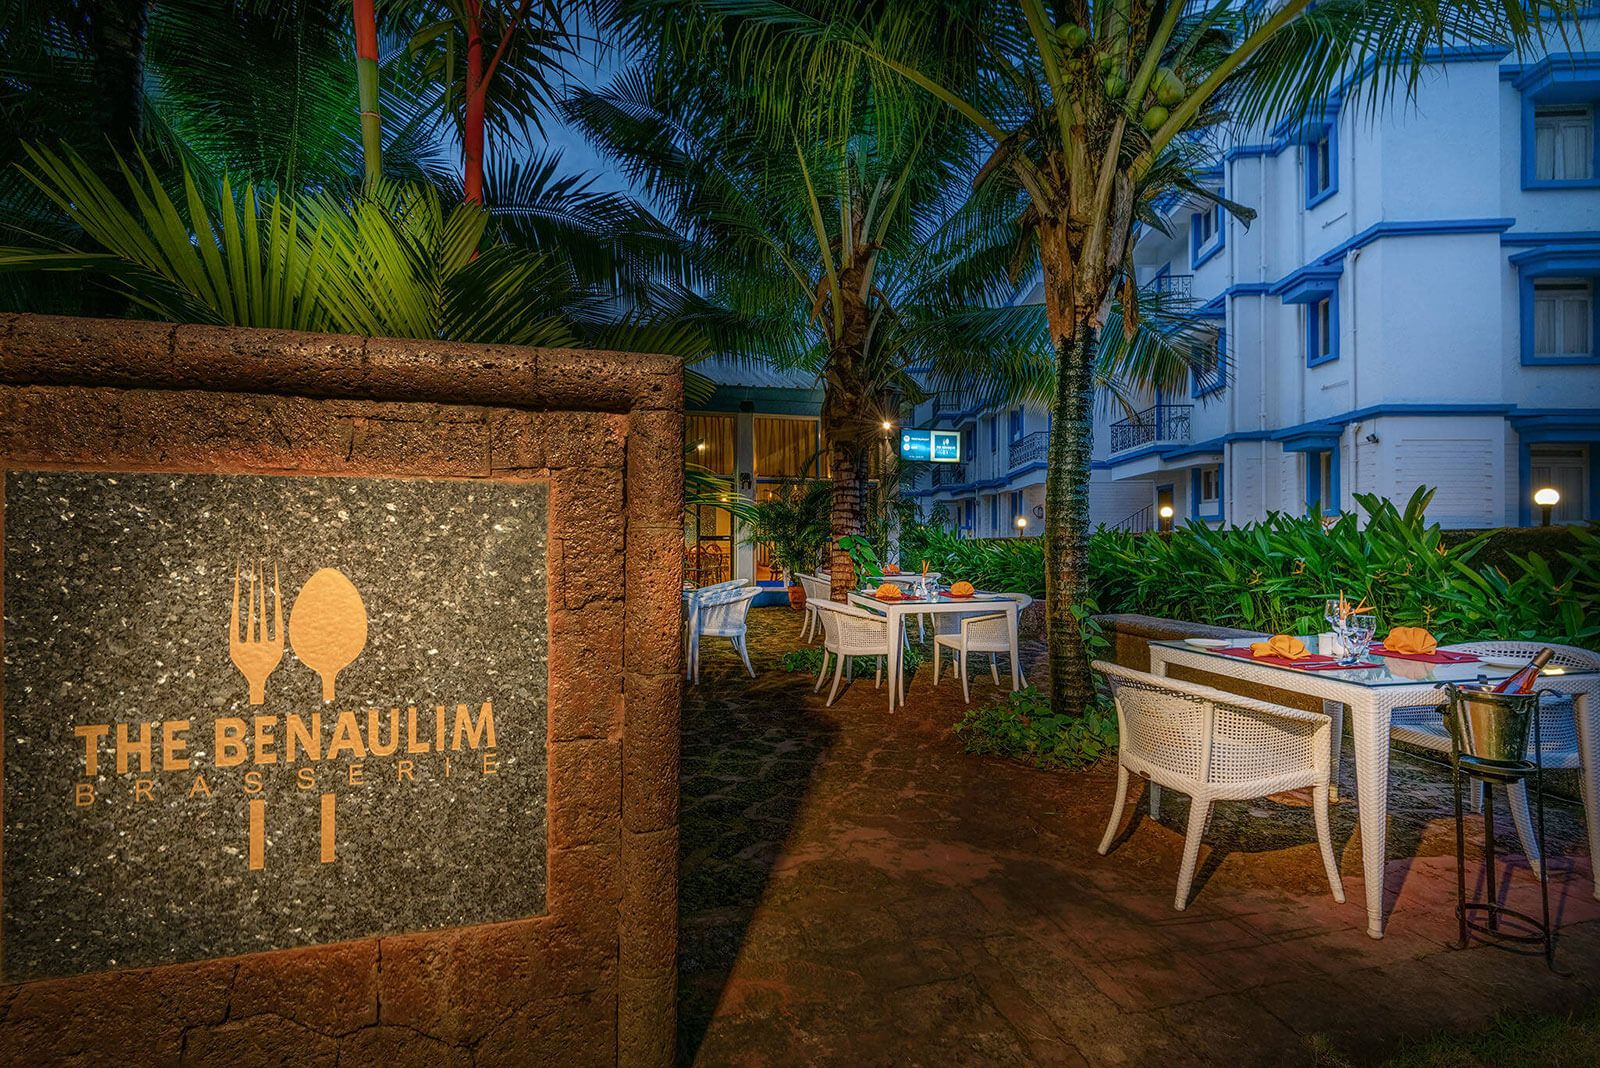 luxury hotel of Karma Royal Palms Benaulim Brasserie Outdoor Seating